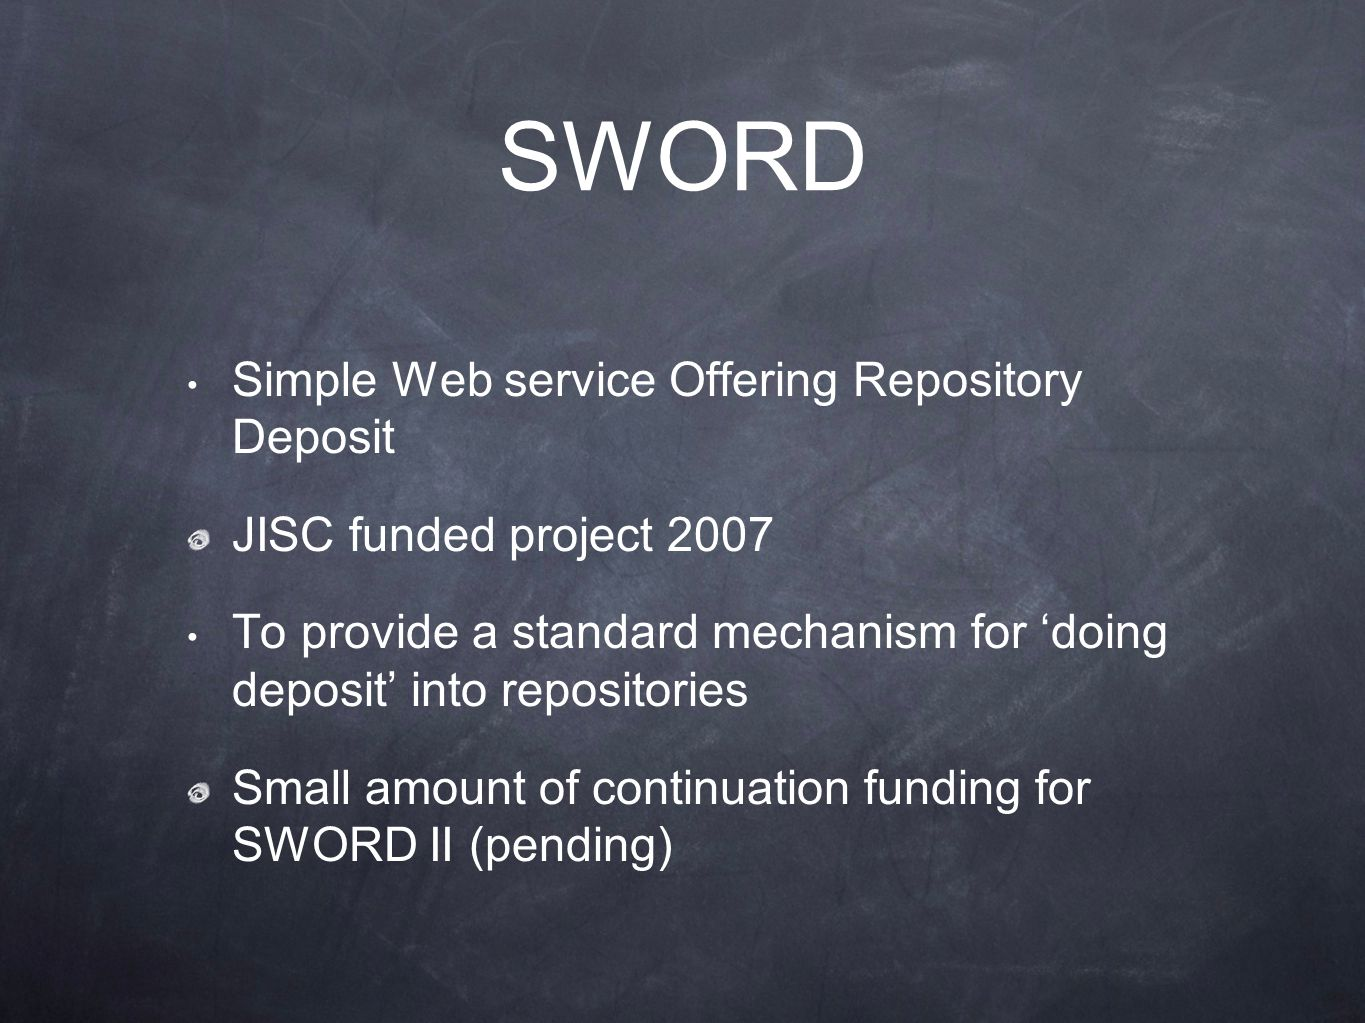 SWORD Simple Web service Offering Repository Deposit JISC funded project 2007 To provide a standard mechanism for 'doing deposit' into repositories Small amount of continuation funding for SWORD II (pending)